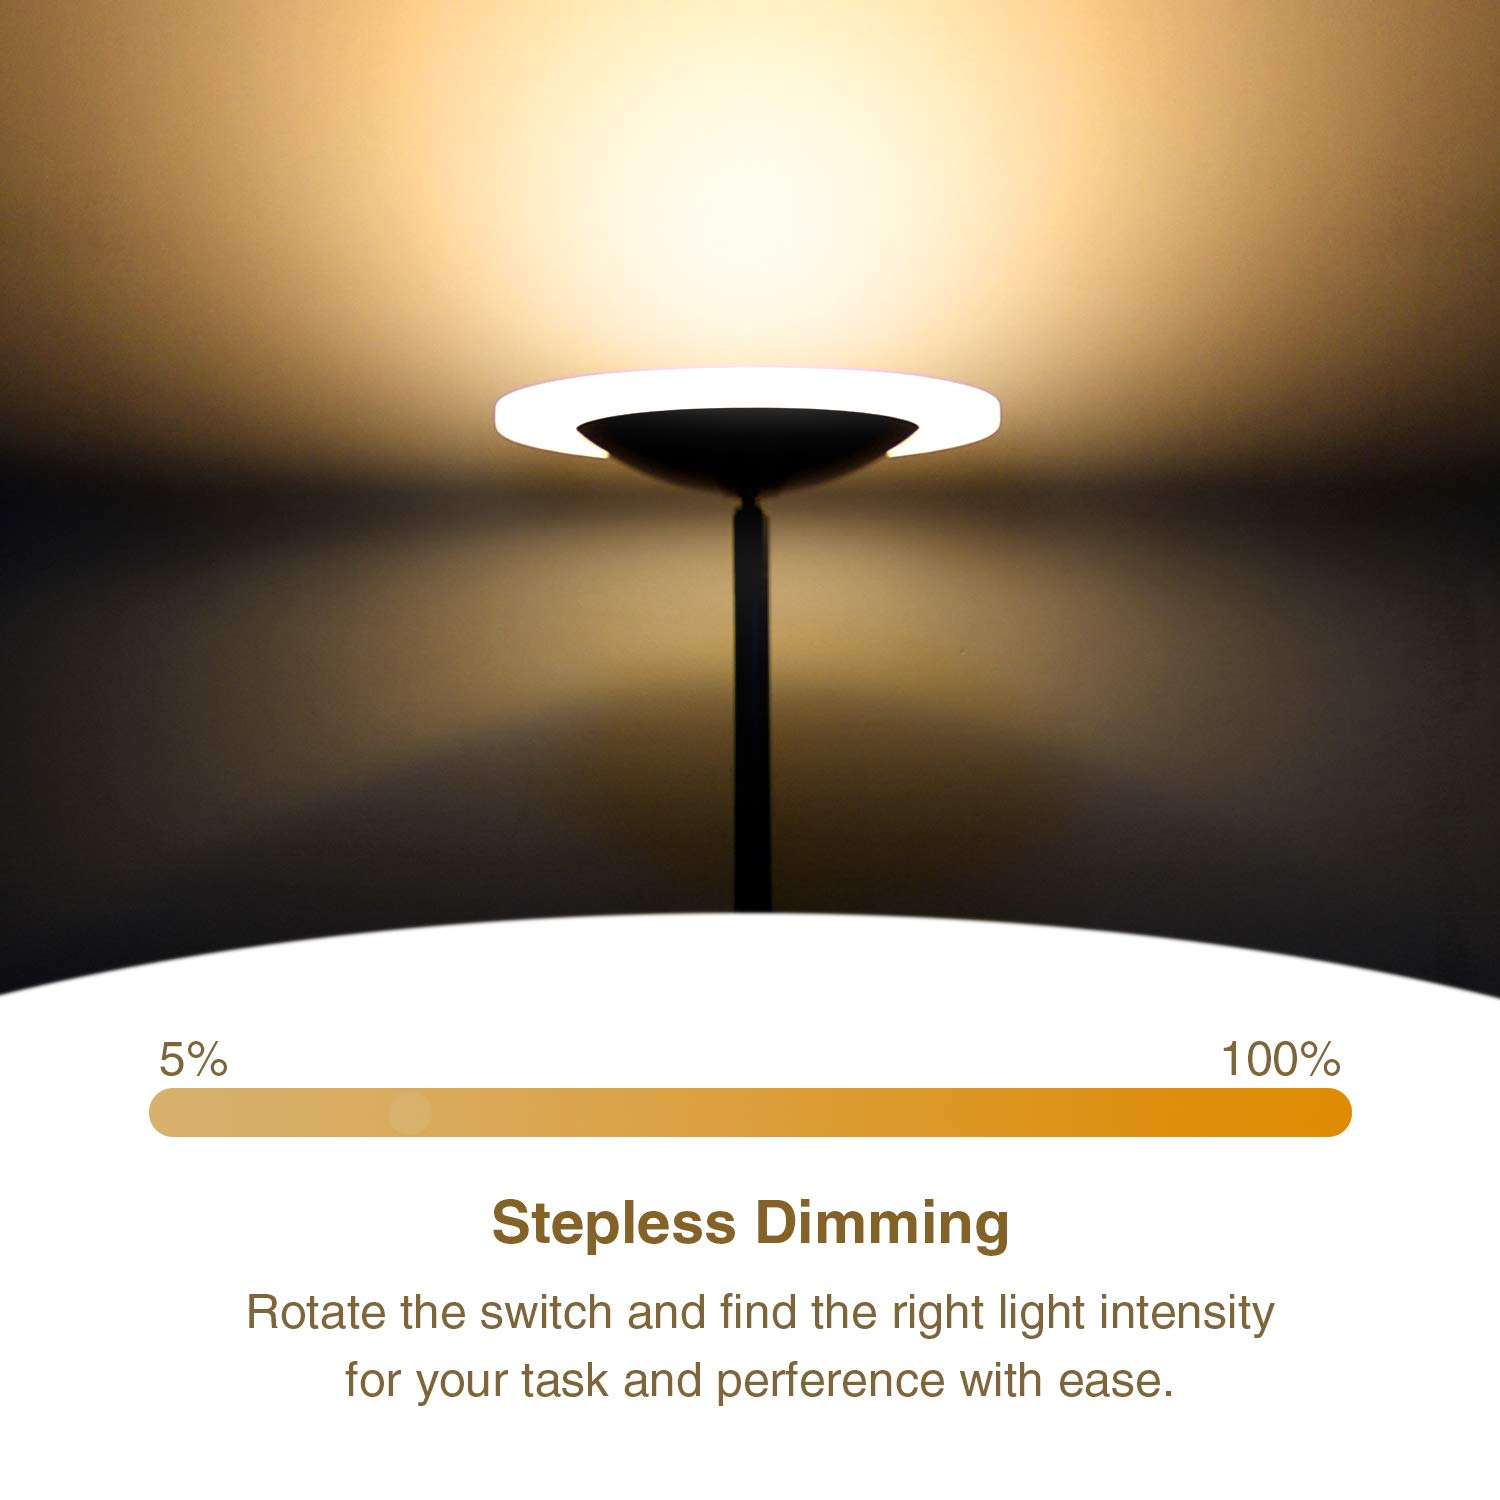 LED Torchiere Floor Lamp, Sunllipe Super Bright 18W Dimmable Uplight Adjustable Floor Lamp, Modern 70.5'' Tall Standing Pole Light, Compatible with Wall Switch for Reading, Office, Living Room, Bedroom by sunllipe (Image #2)